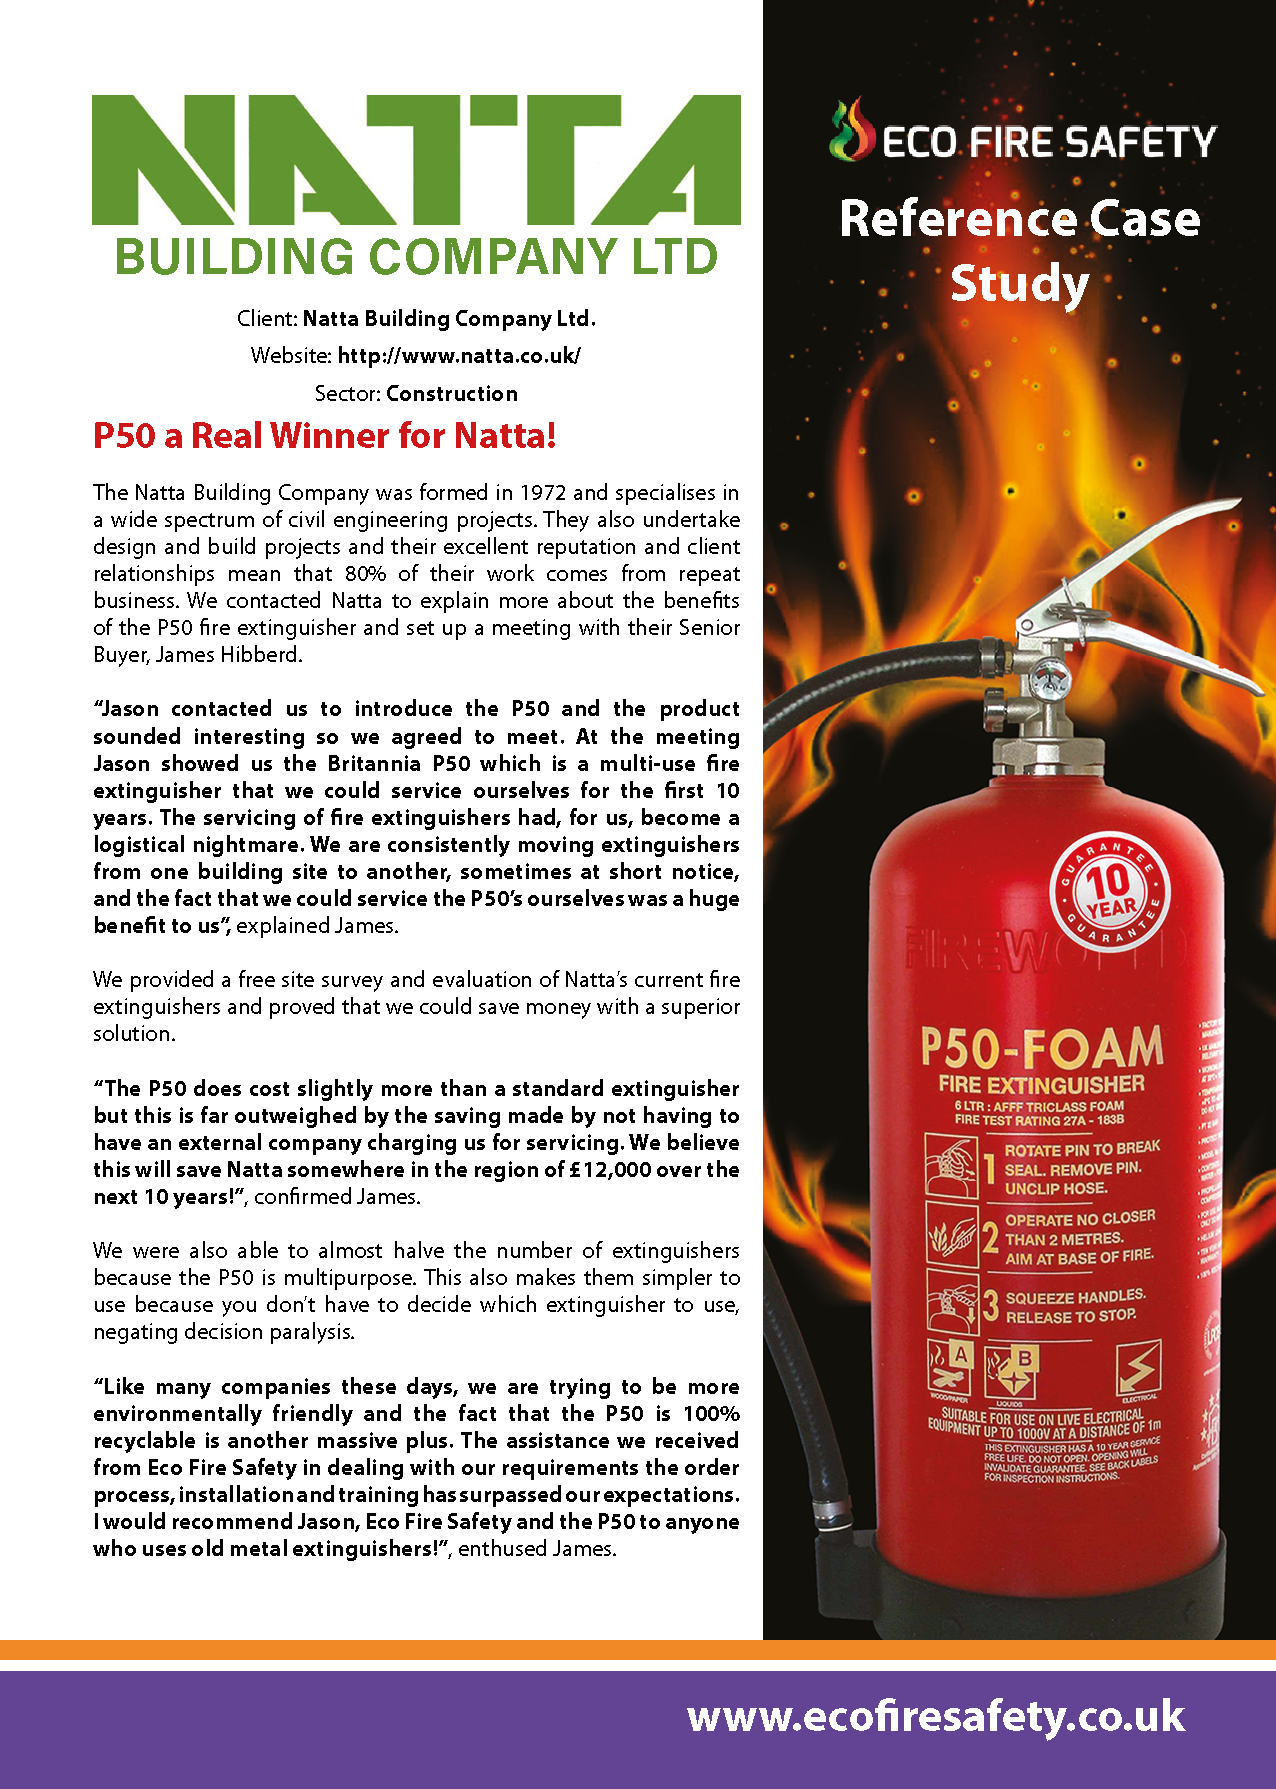 Case Studies in Fire Safety | ScienceDirect.com